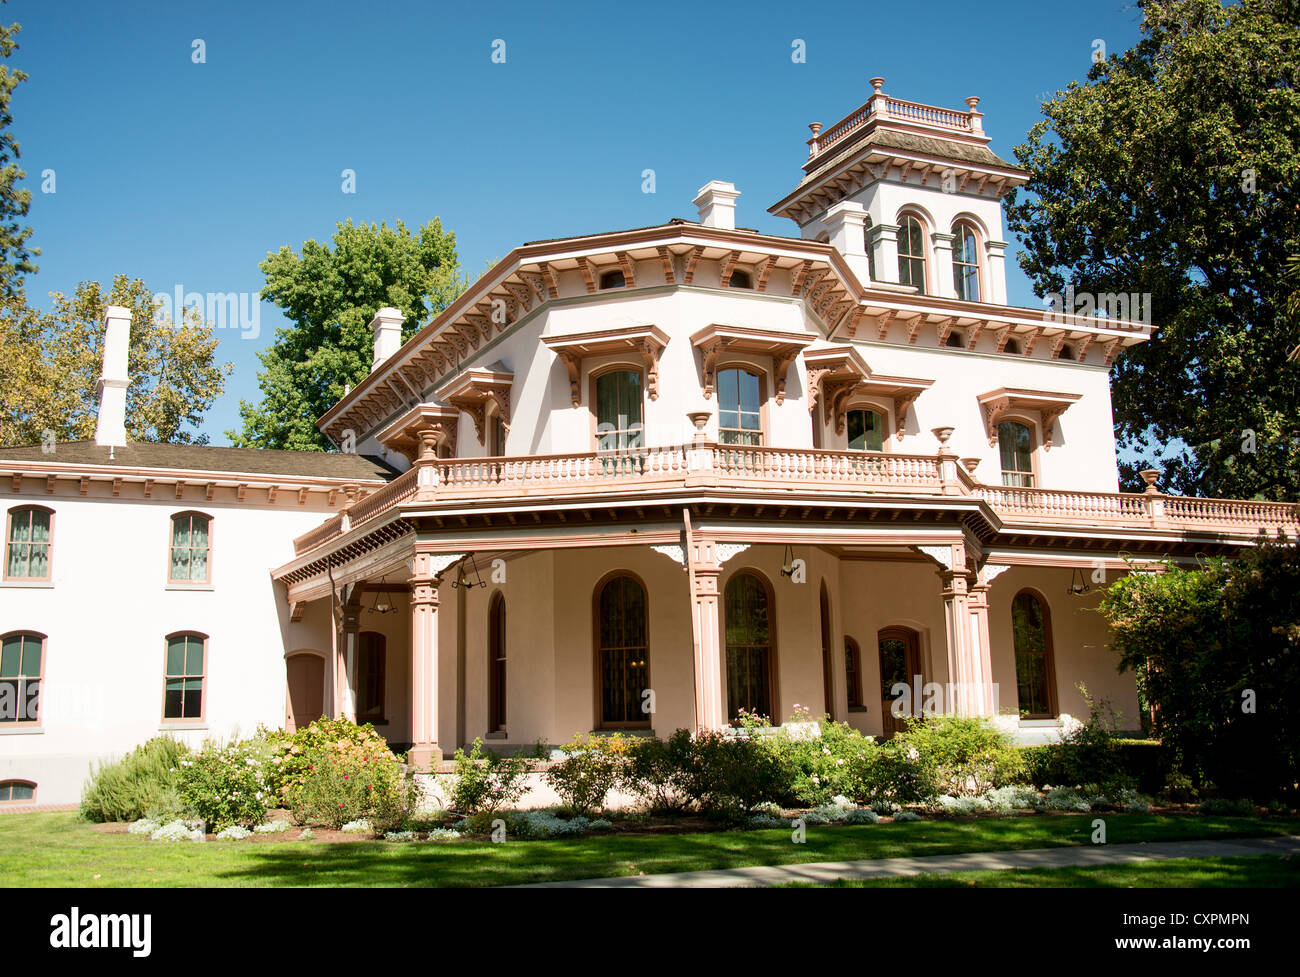 Bidwell Mansion In The Bidwell Mansion State Historic Park In Chico Stock Photo Alamy